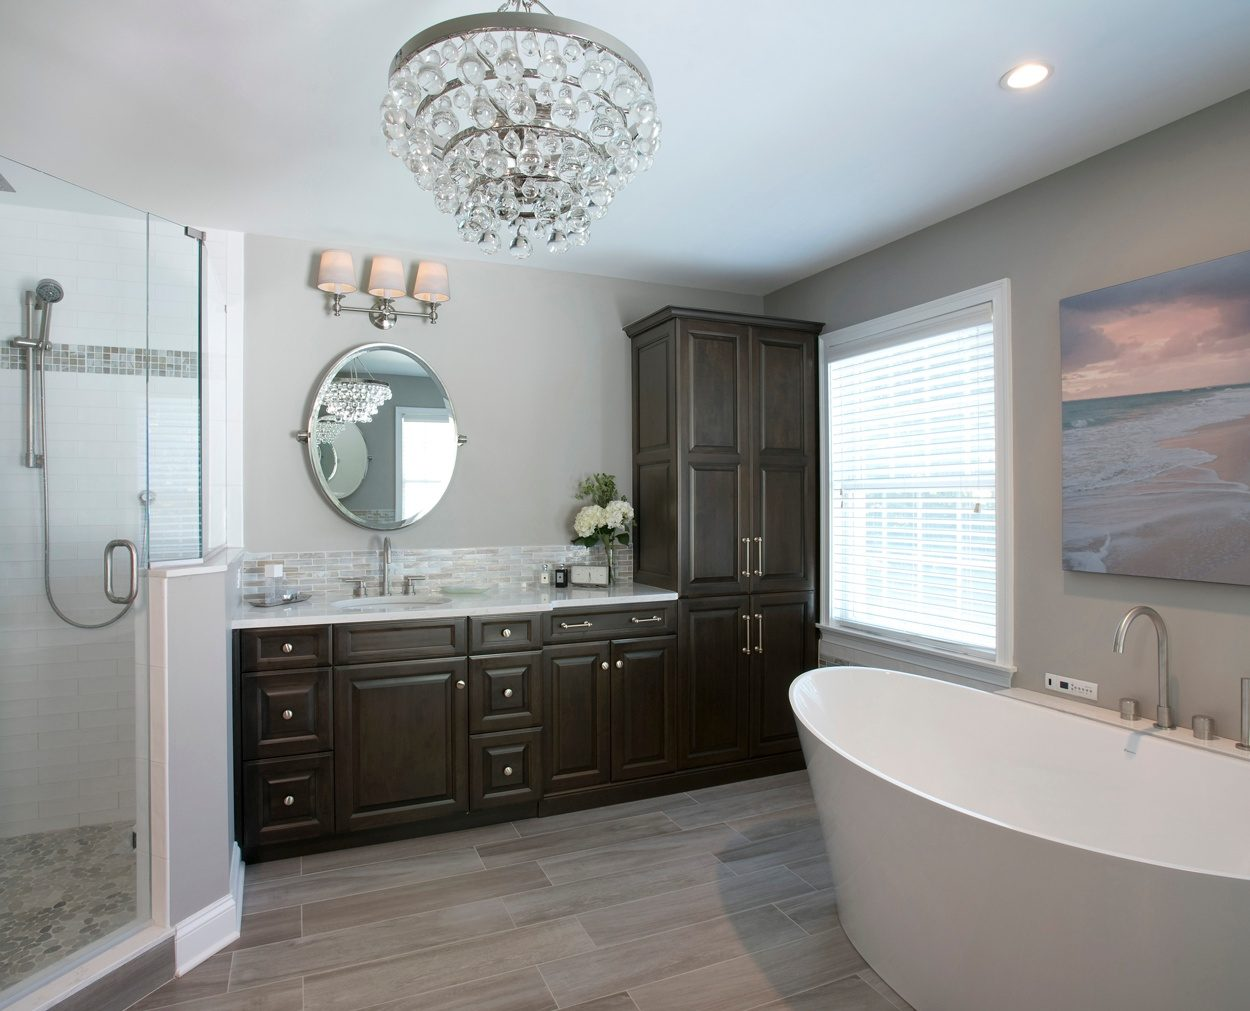 Dark Grabill cabinetry and a big shower are highlights of this Clark Construction bath design.